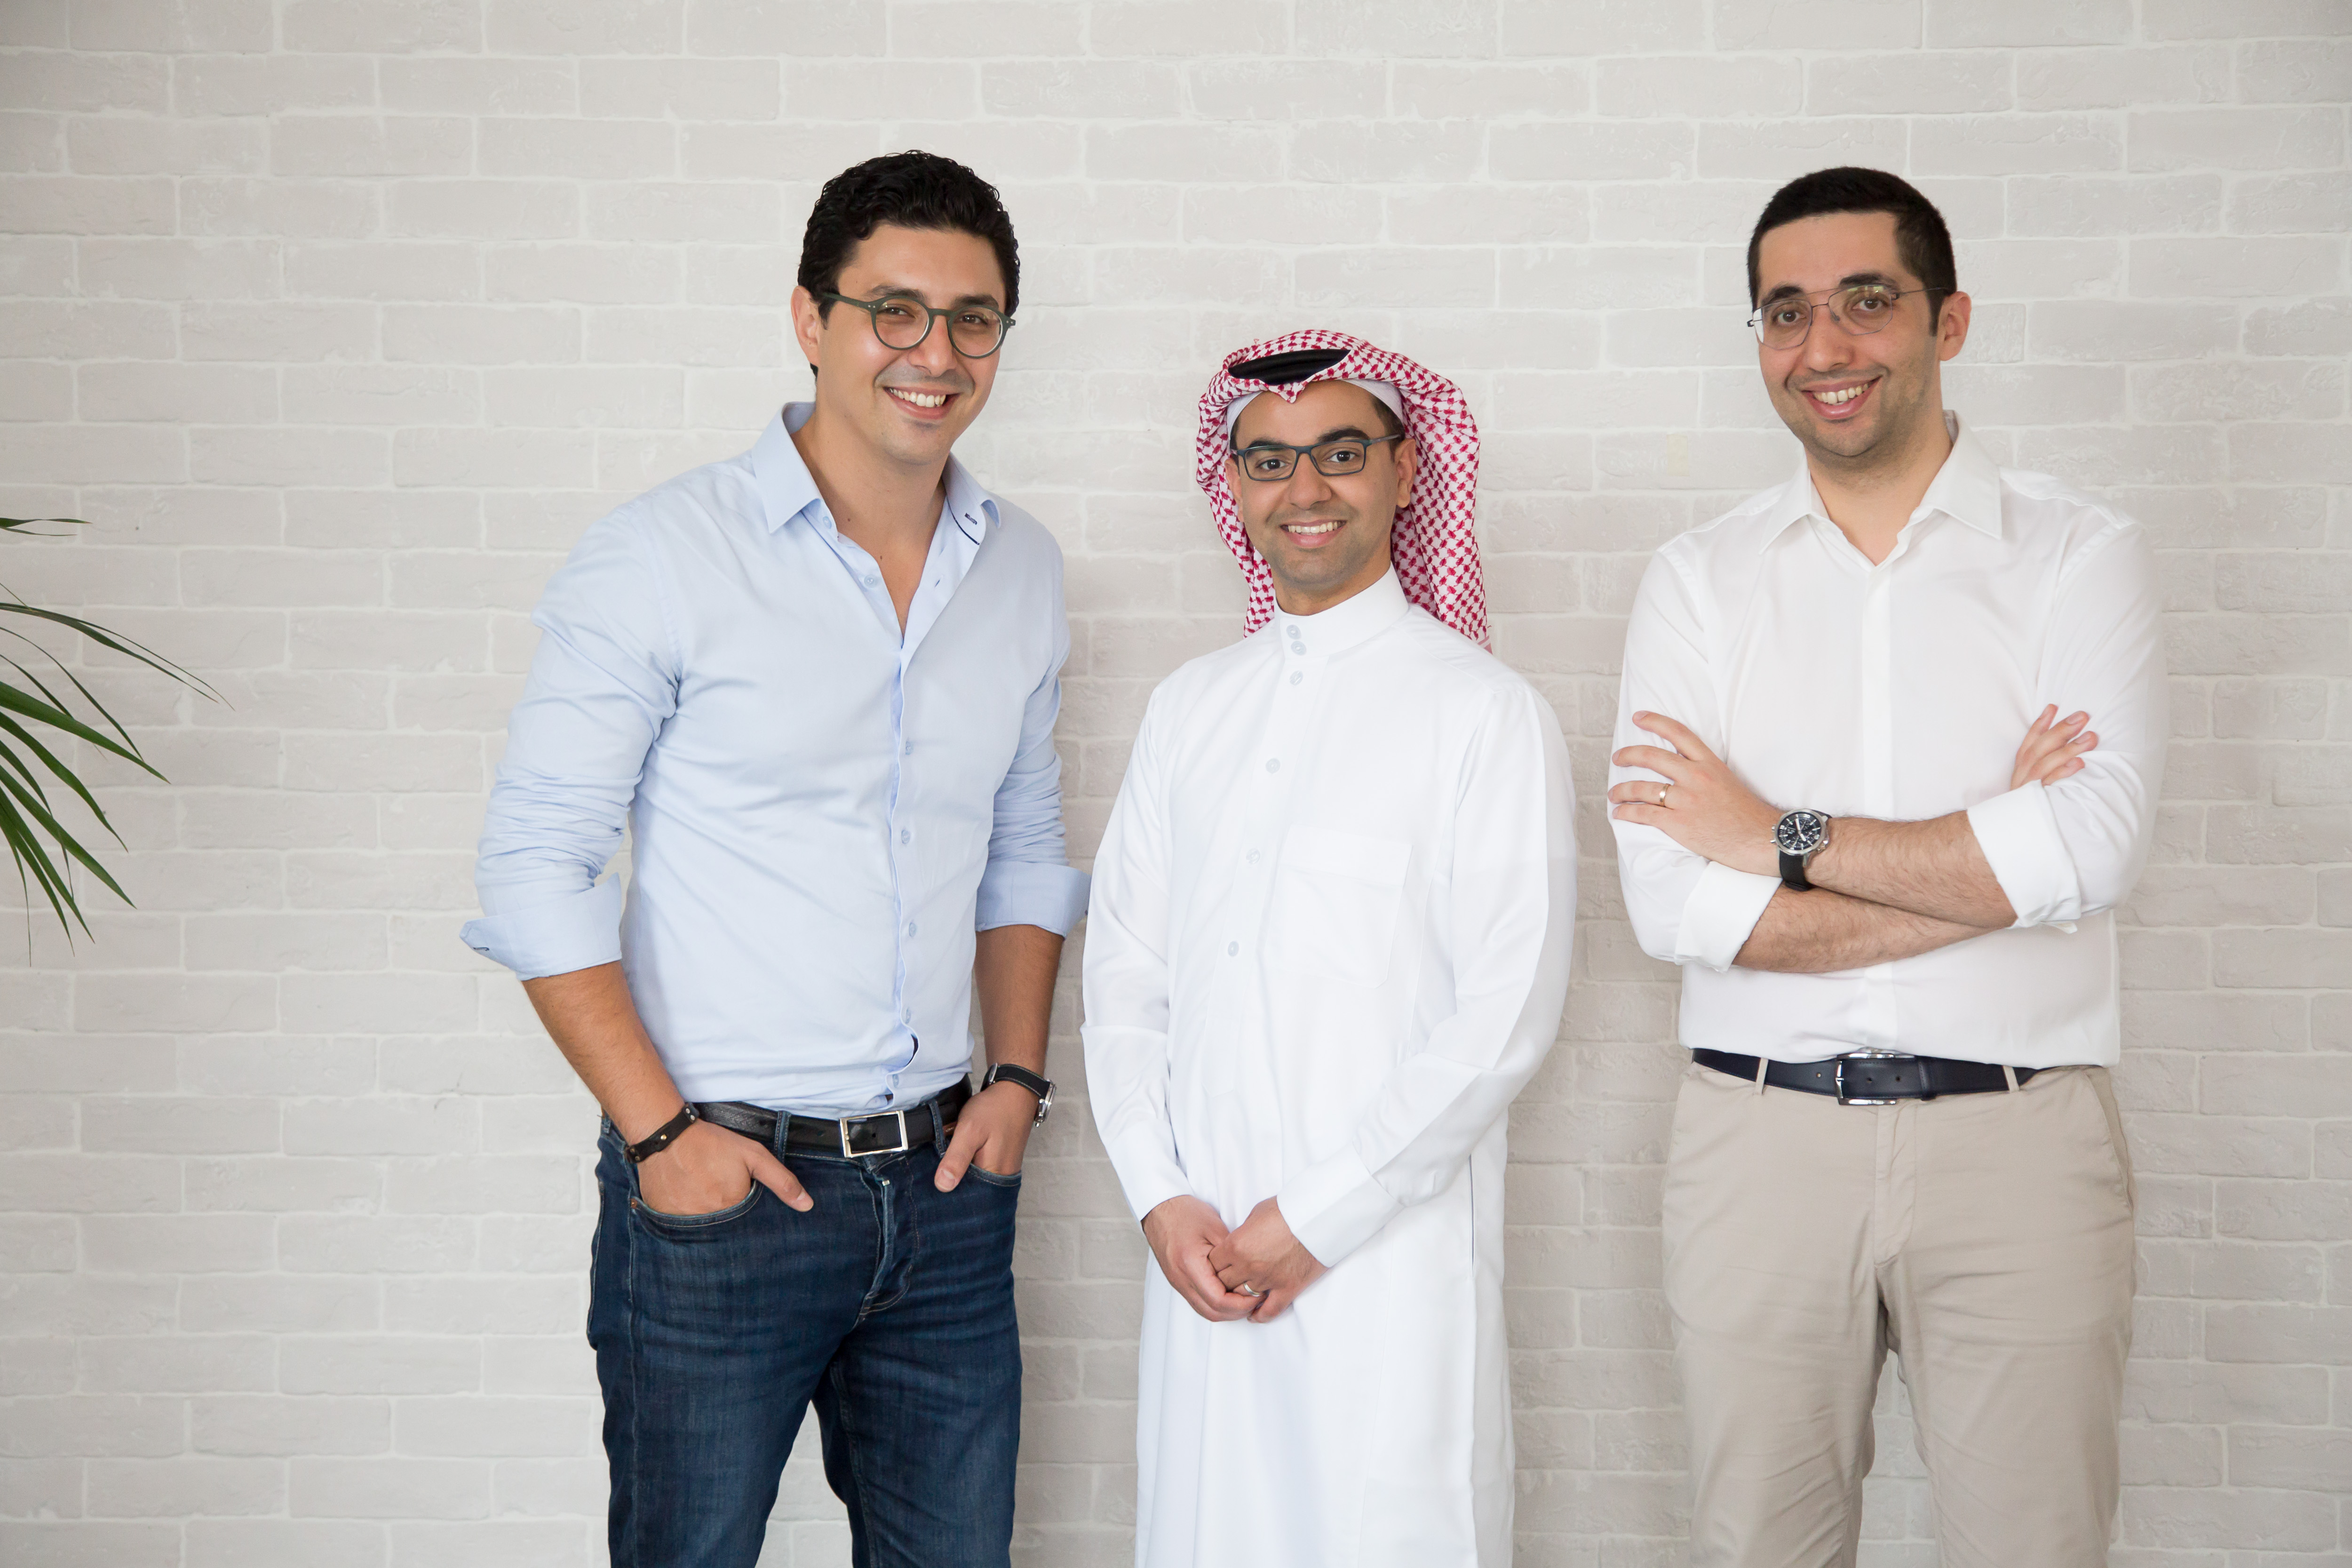 Exclusive Q&A with eyewa following the close of their $7.5M Series A funding